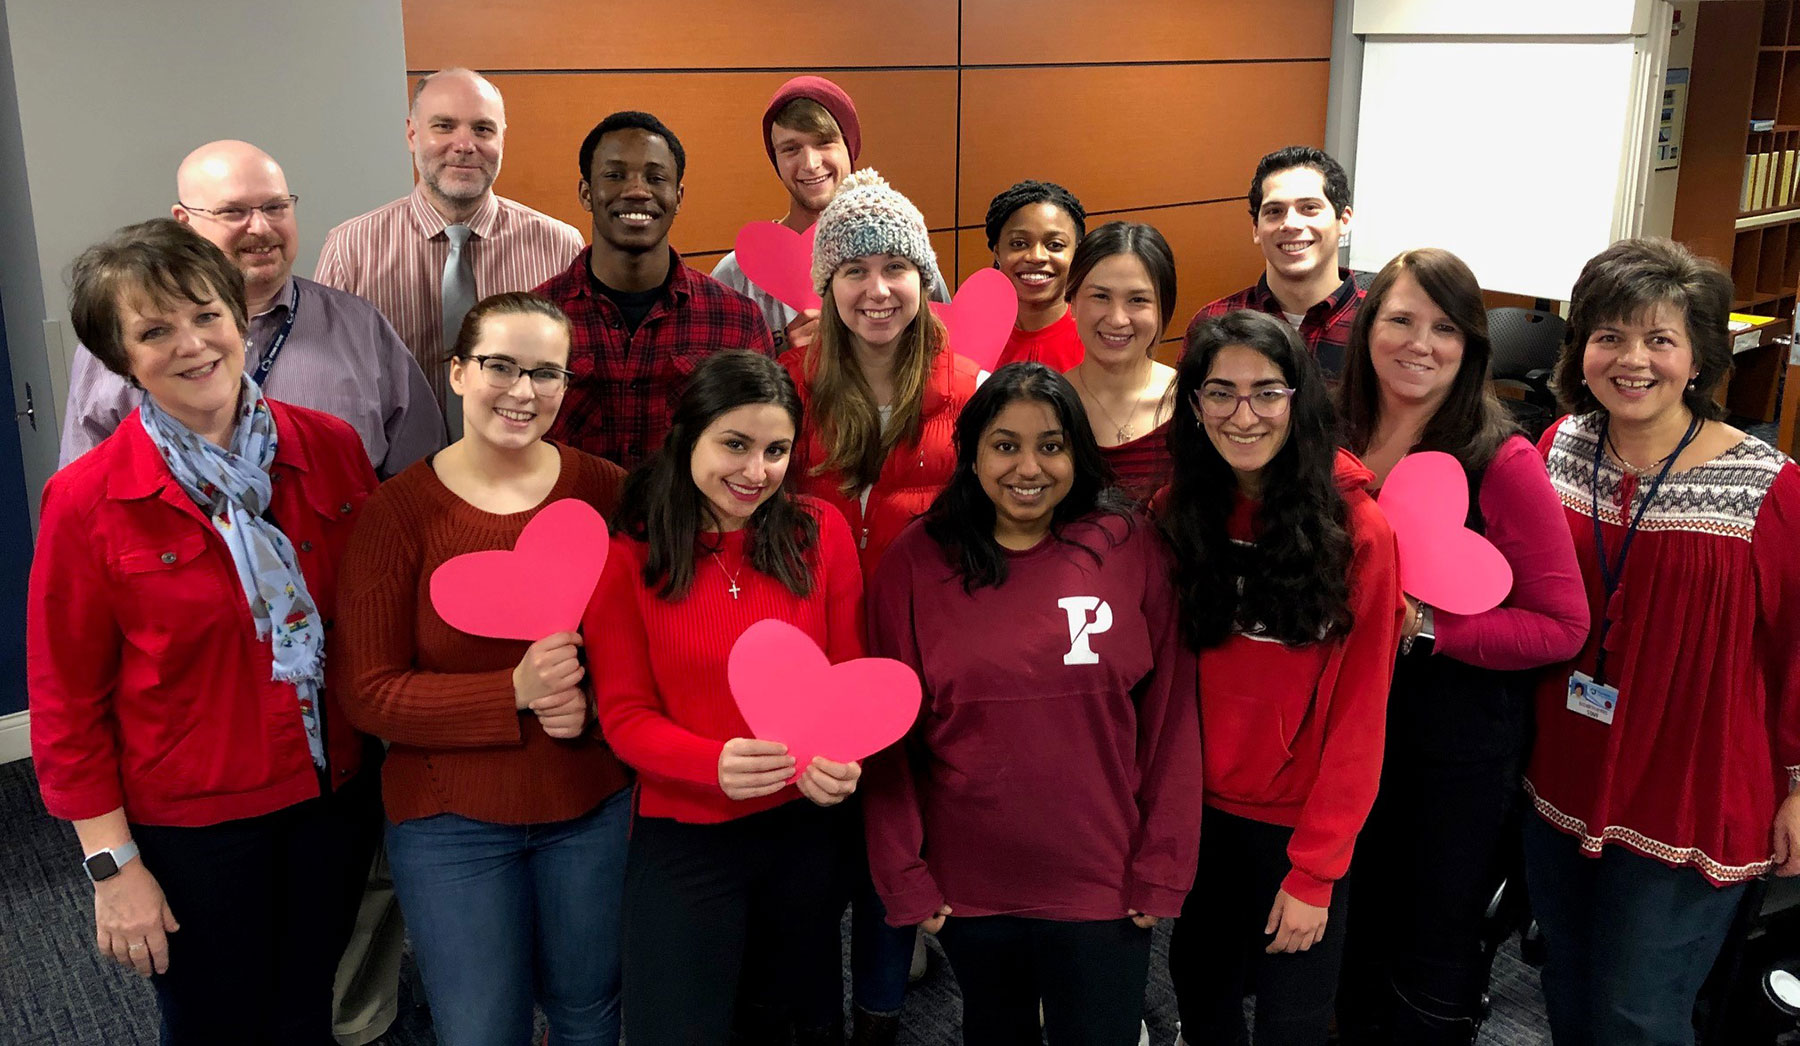 A photo shows a group of 15 people wearing various shades of red and holding cut-out paper hearts.